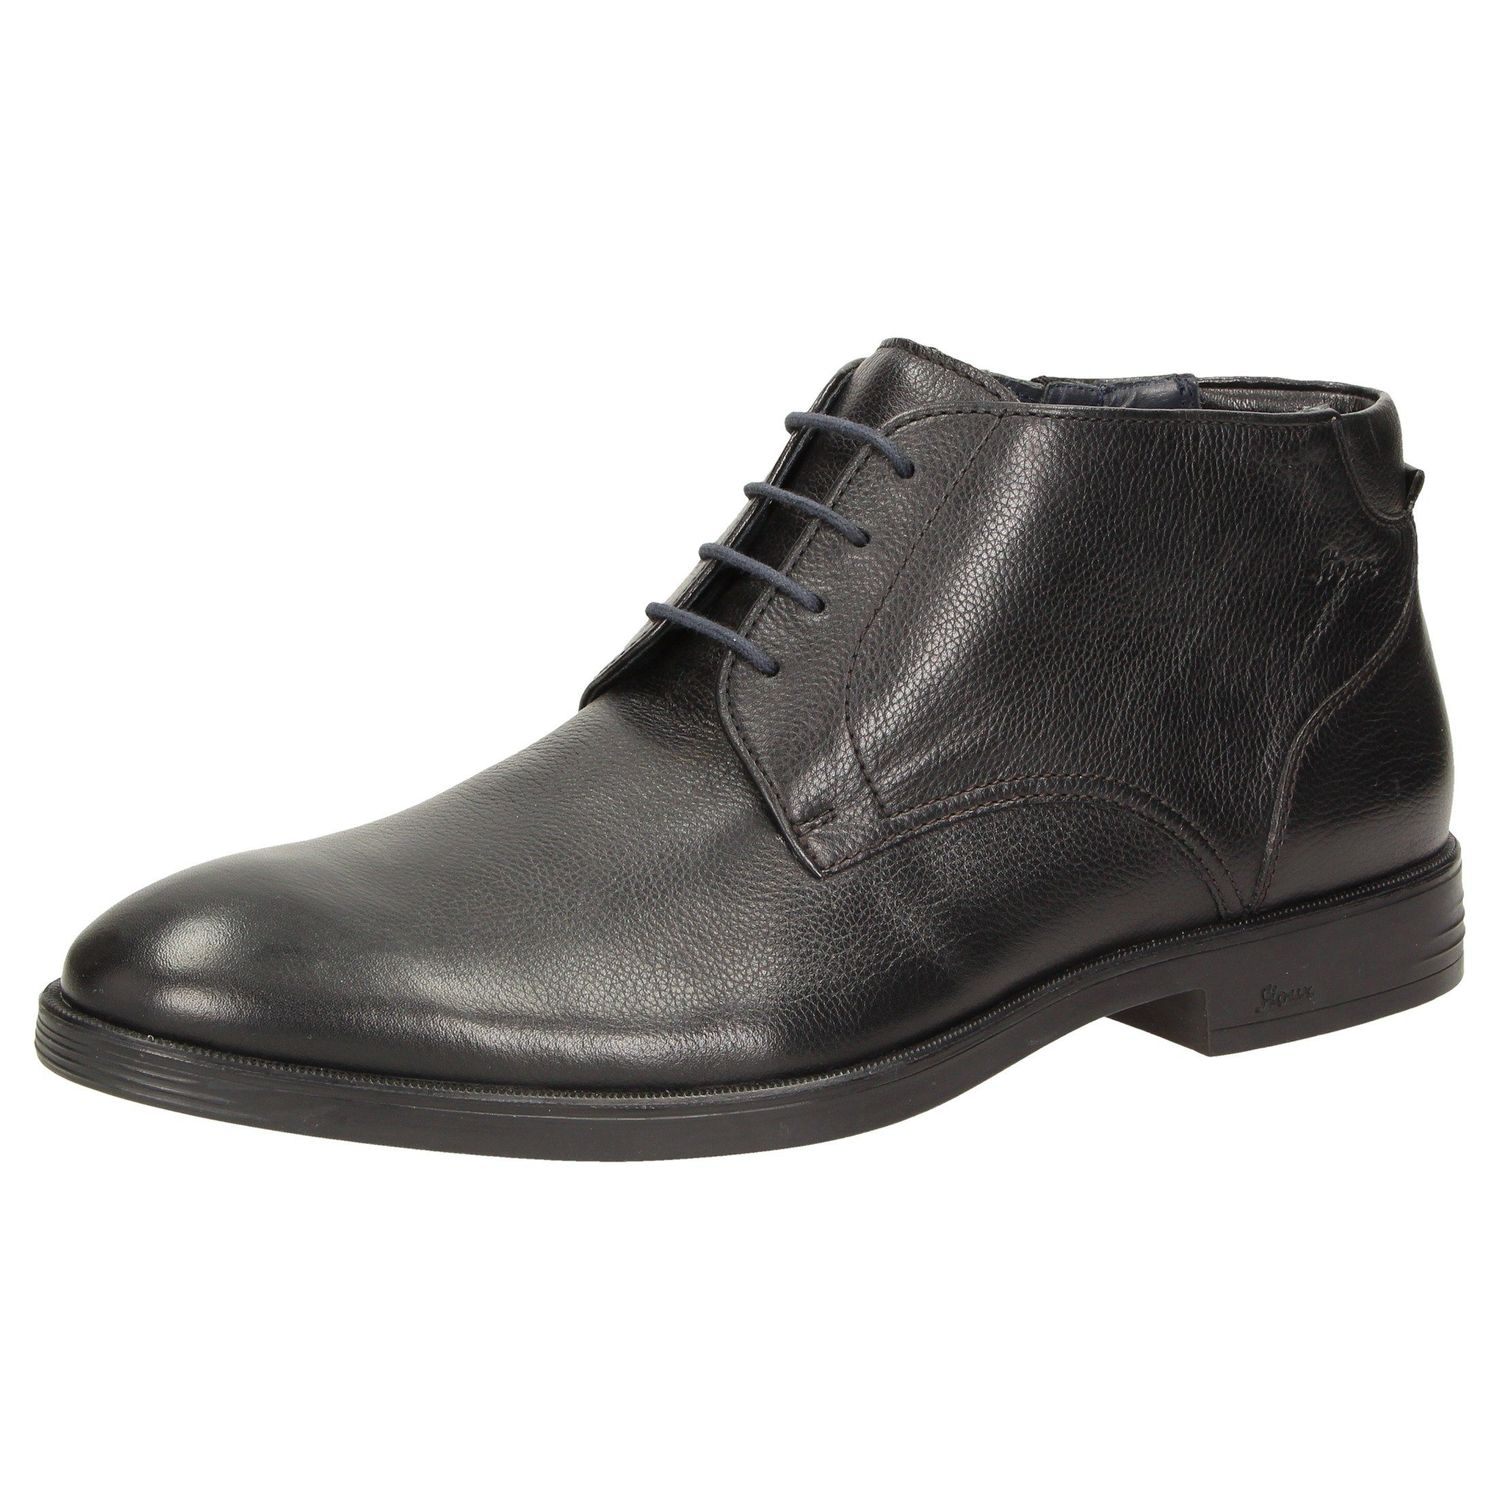 Details Black Extra 35590 Xl Foriolo About Shoes Business Wide 701 Ankle Sioux Boots Ybf76gmvIy